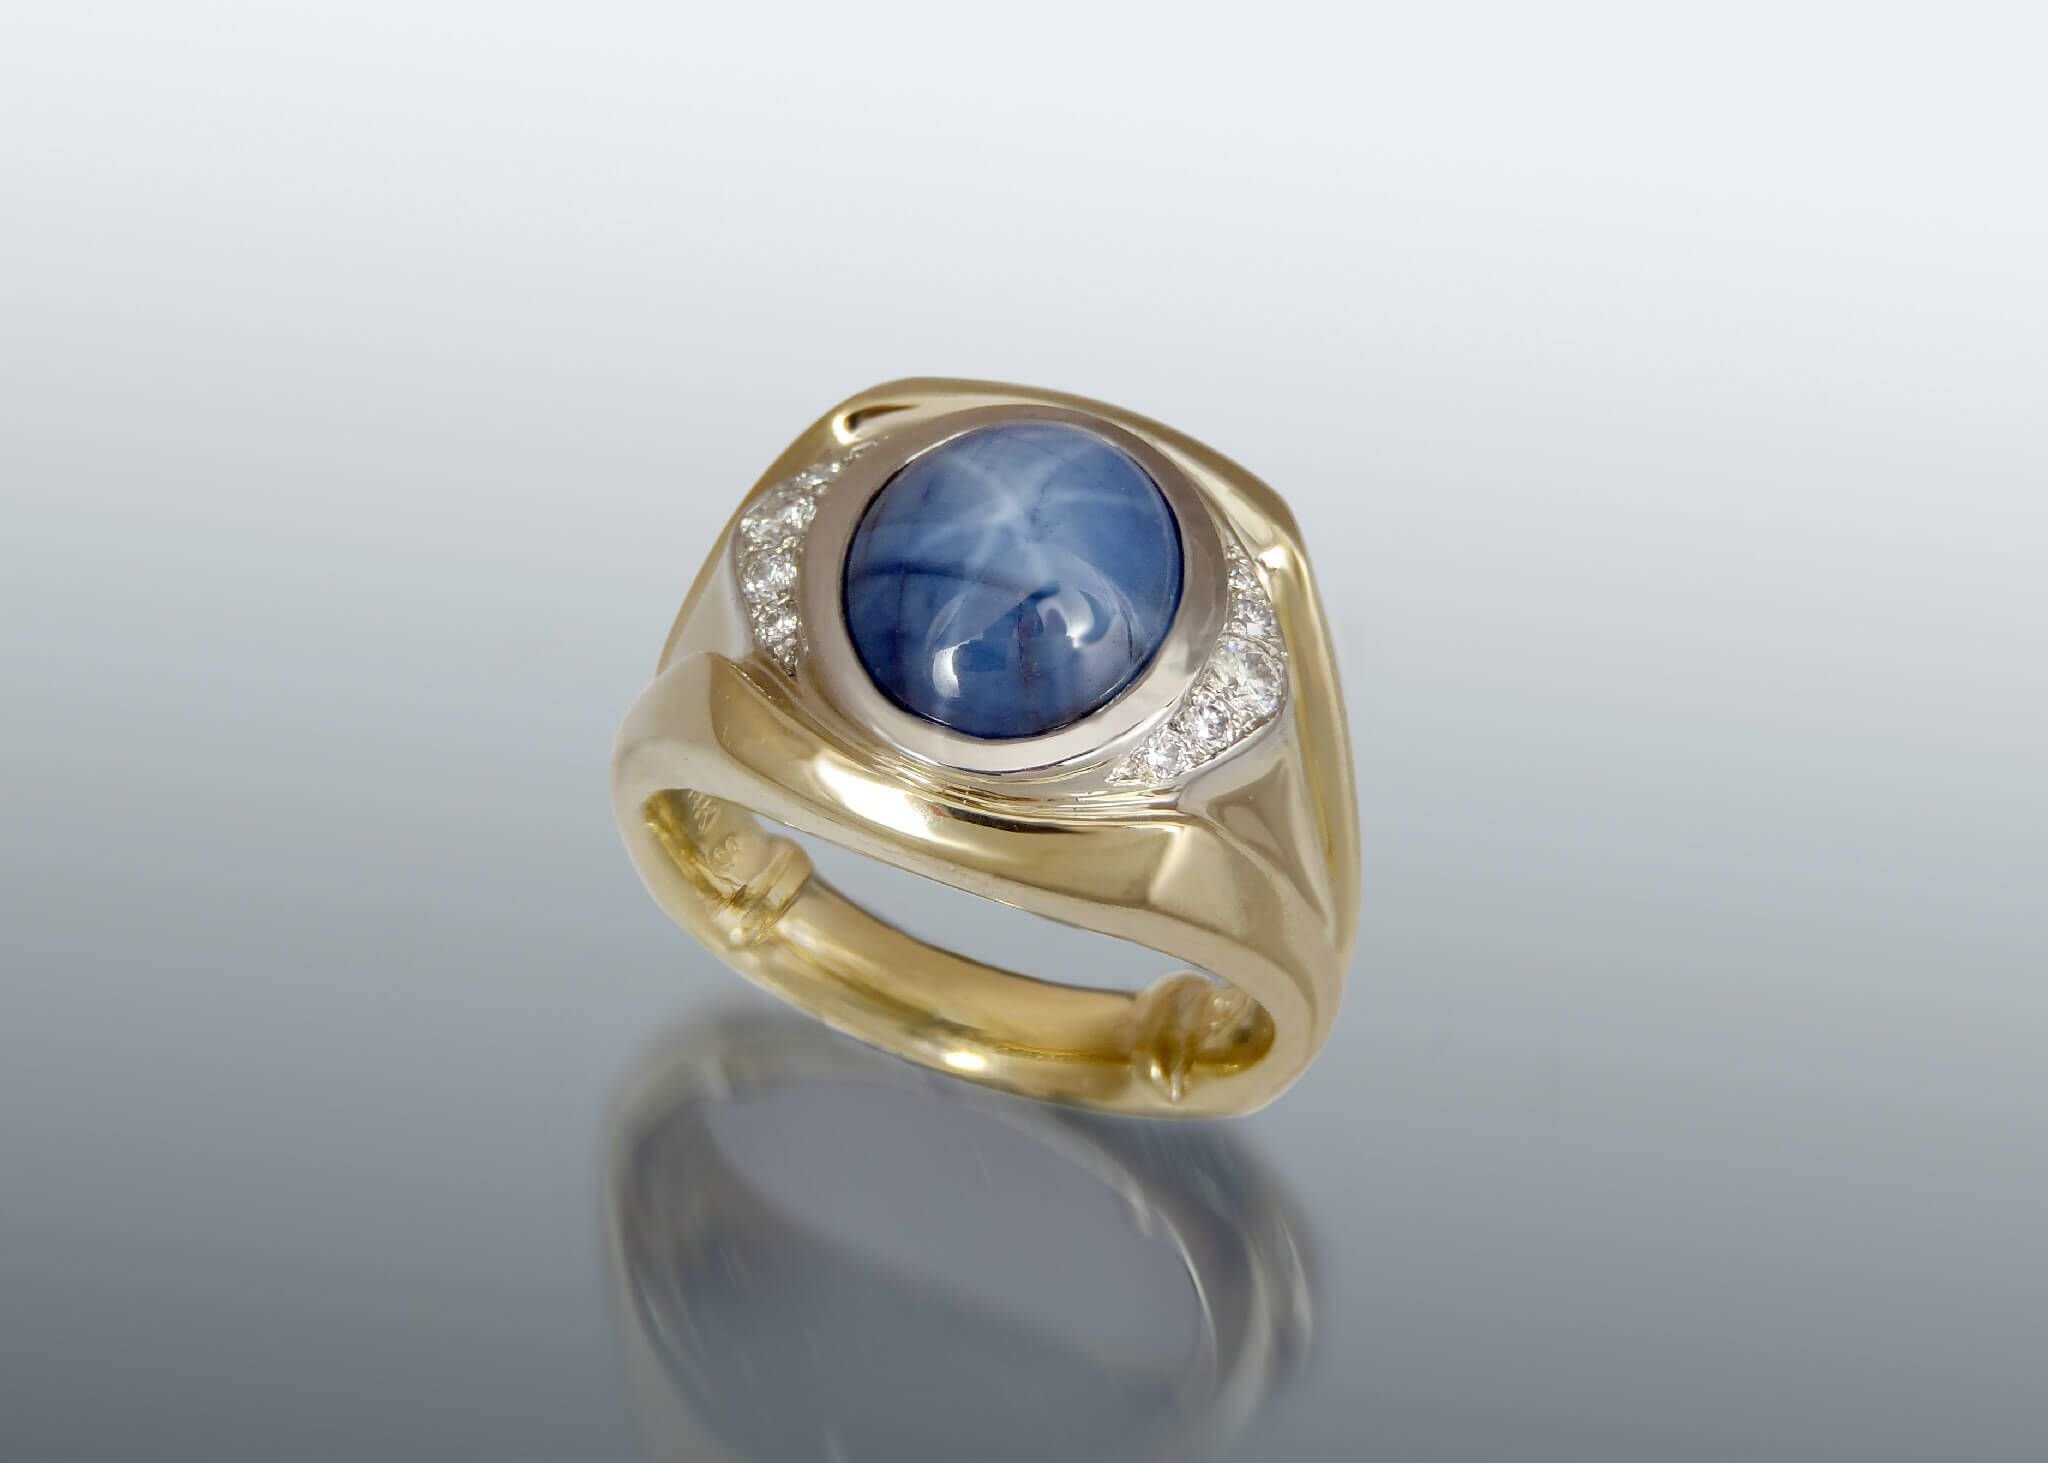 Star Sapphire Mens Ring Star Sapphire Ring Diamond Fashion Jewelry Jewelry